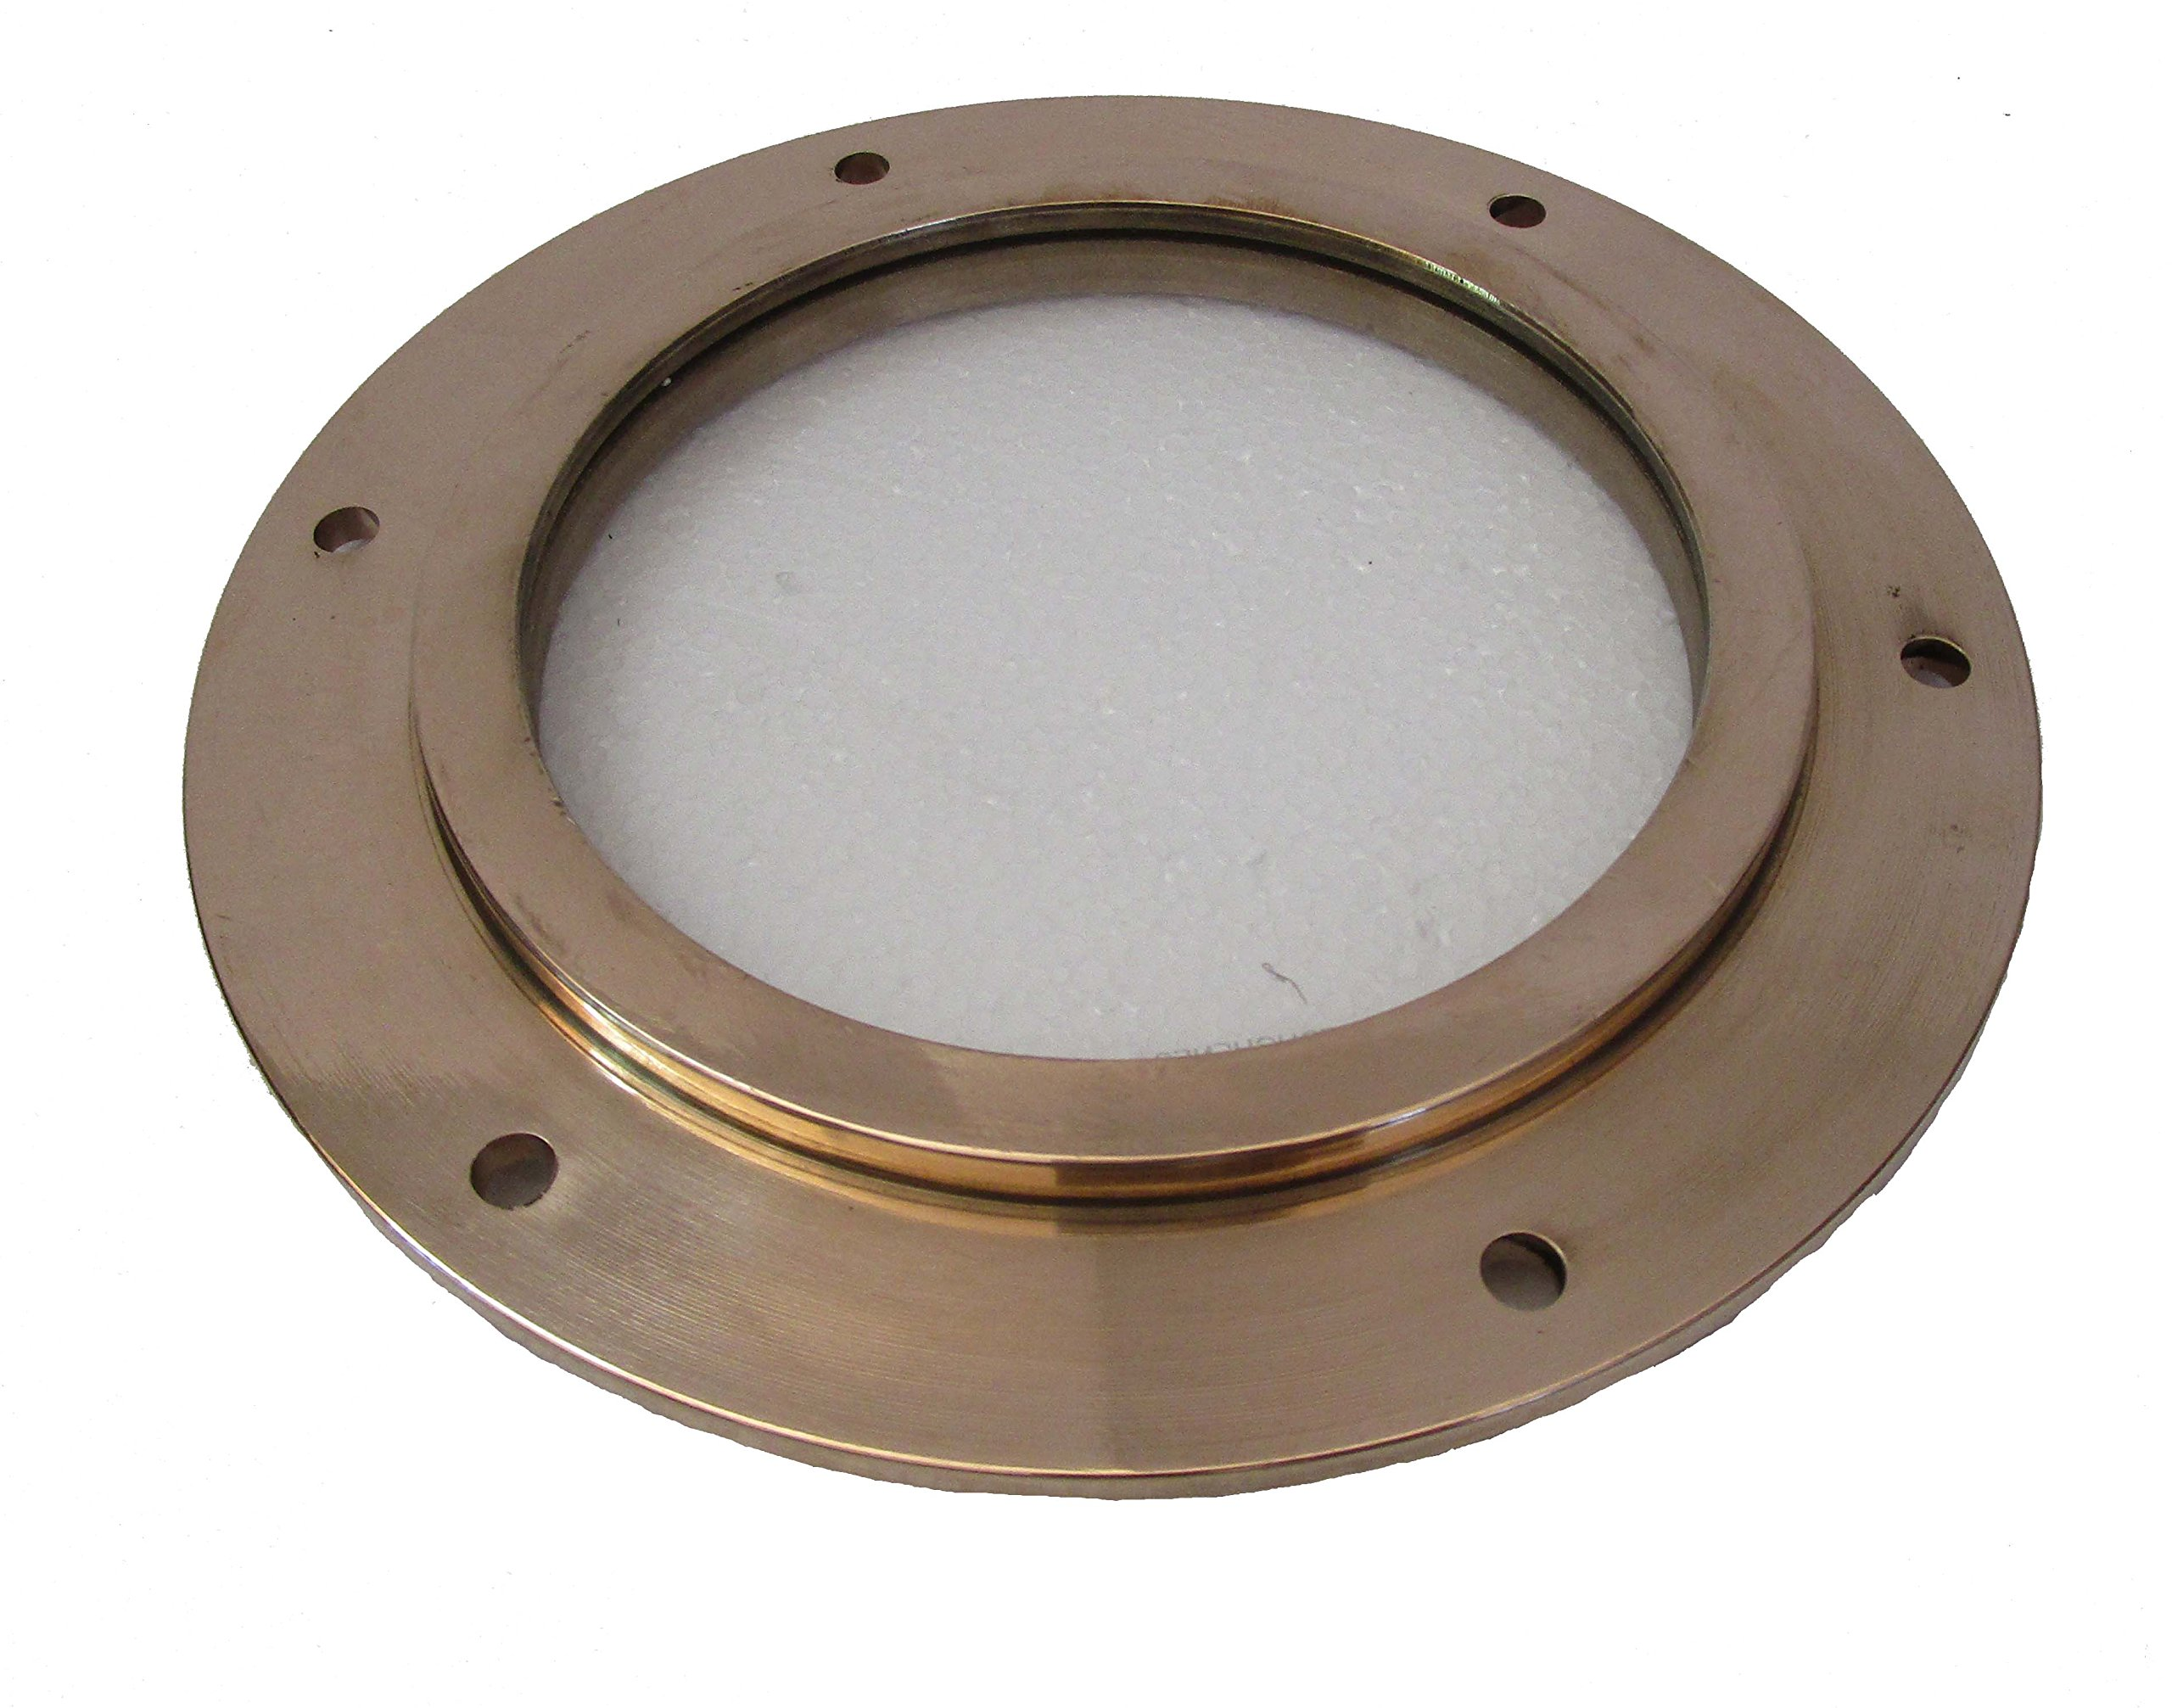 Marine Brass Port Hole/Window/Porthole - 6 INCHES - TOUGHENED Glass - Nautical/Boat/Maritime (5227) by Brass Blessing